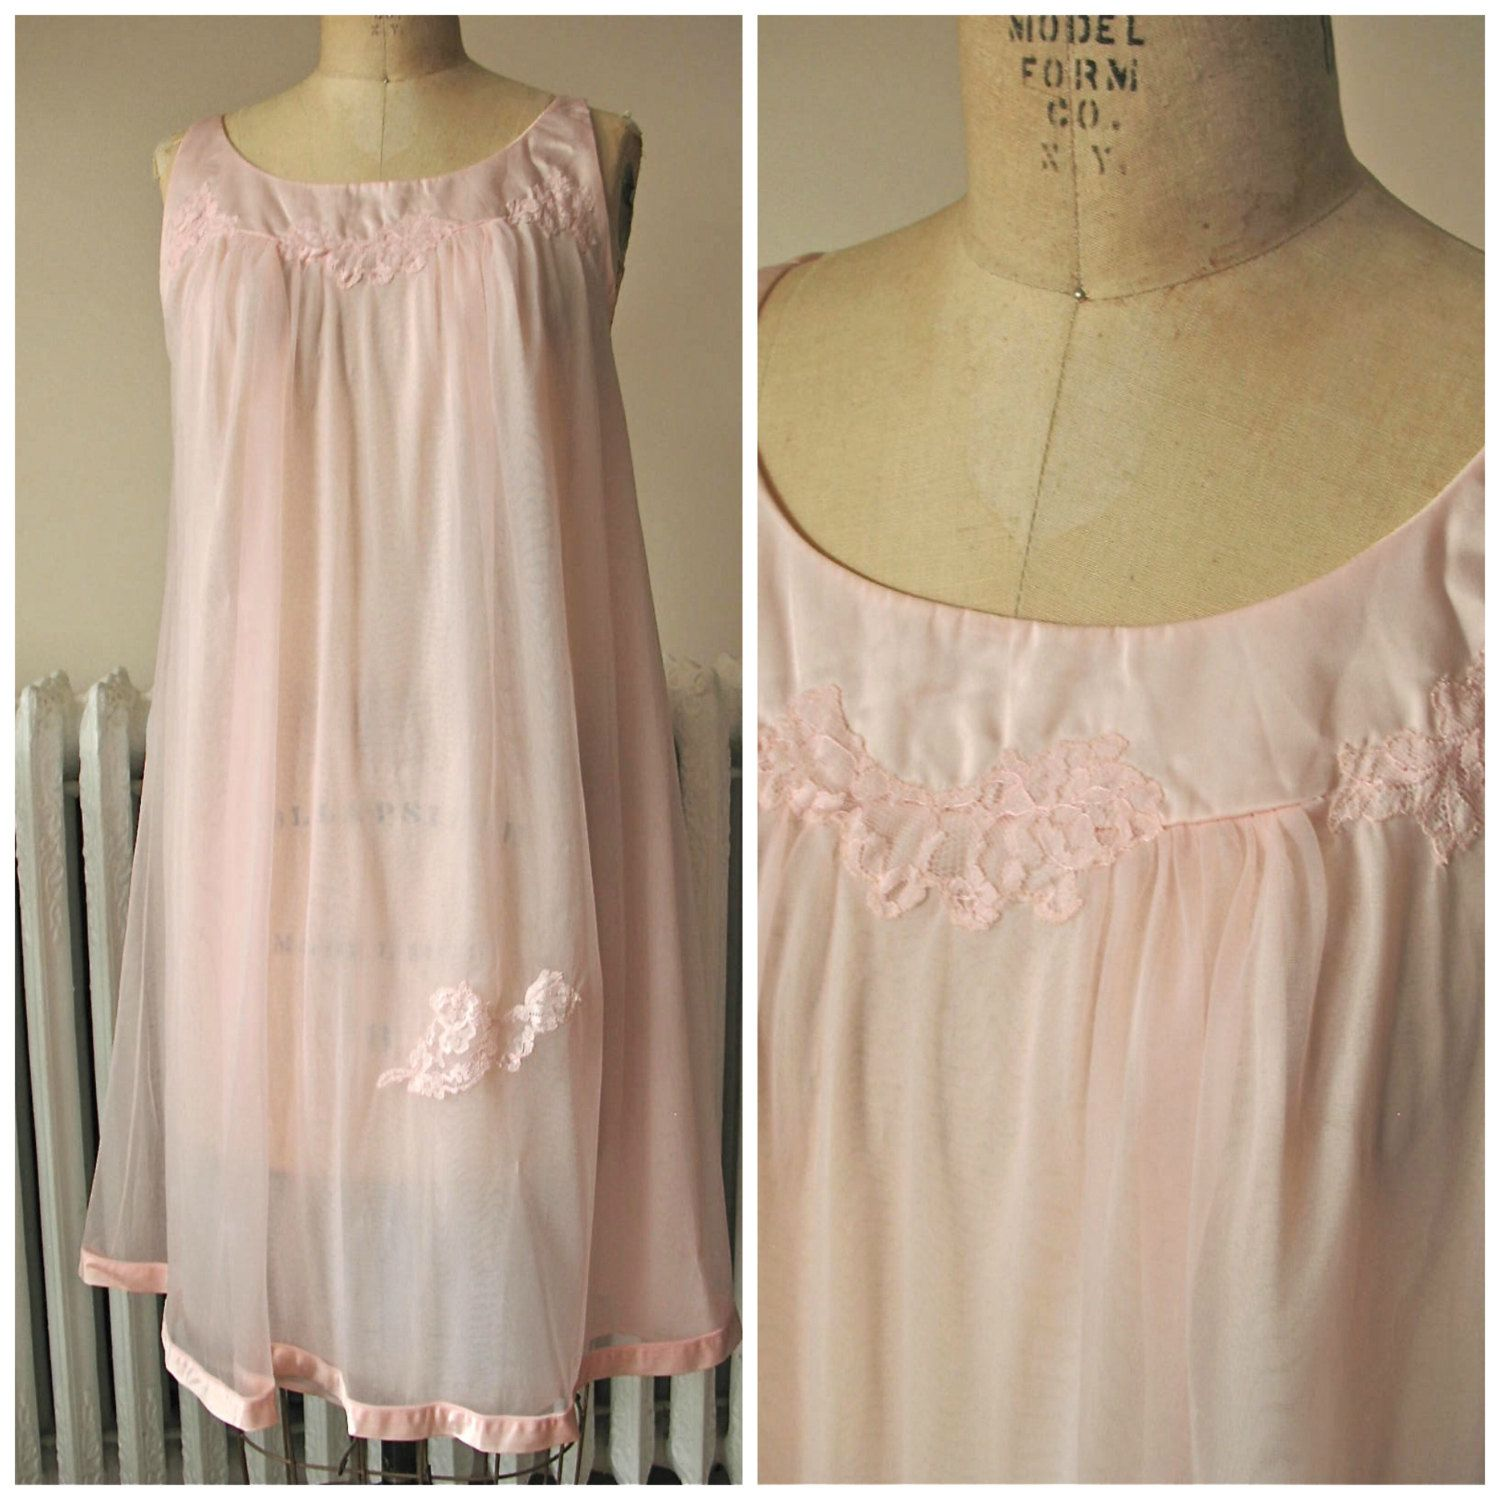 Rose | Vintage 1960s Blush Pink Nylon Chiffon Nightgown - Trapeze Shape with Lace Floral Appliquees and Satin Trim by BobbinsNBombshells on Etsy